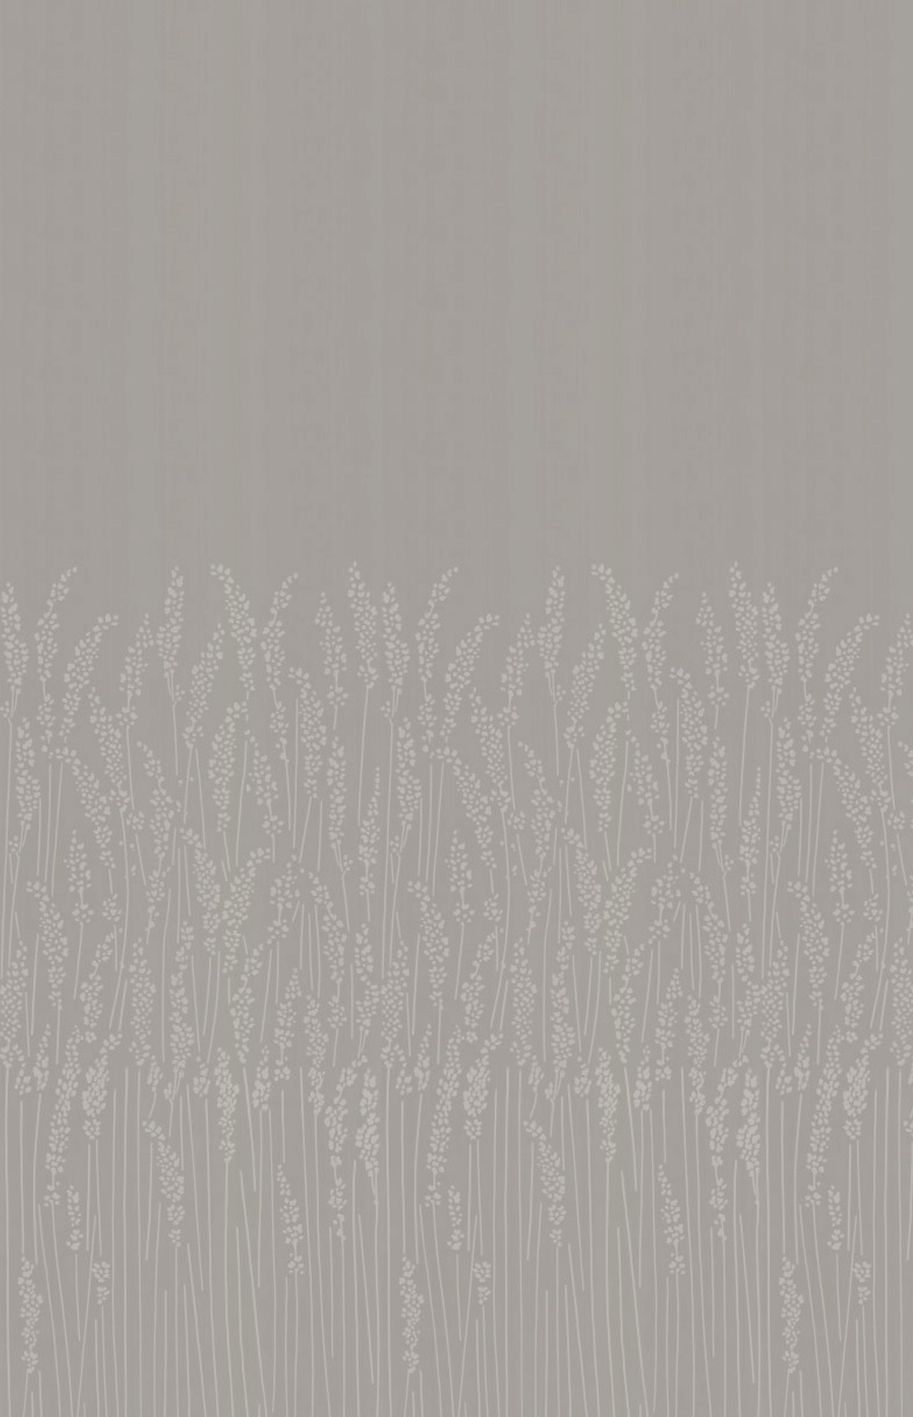 Feather Grass Wallpaper - Stone - by Farrow & Ball